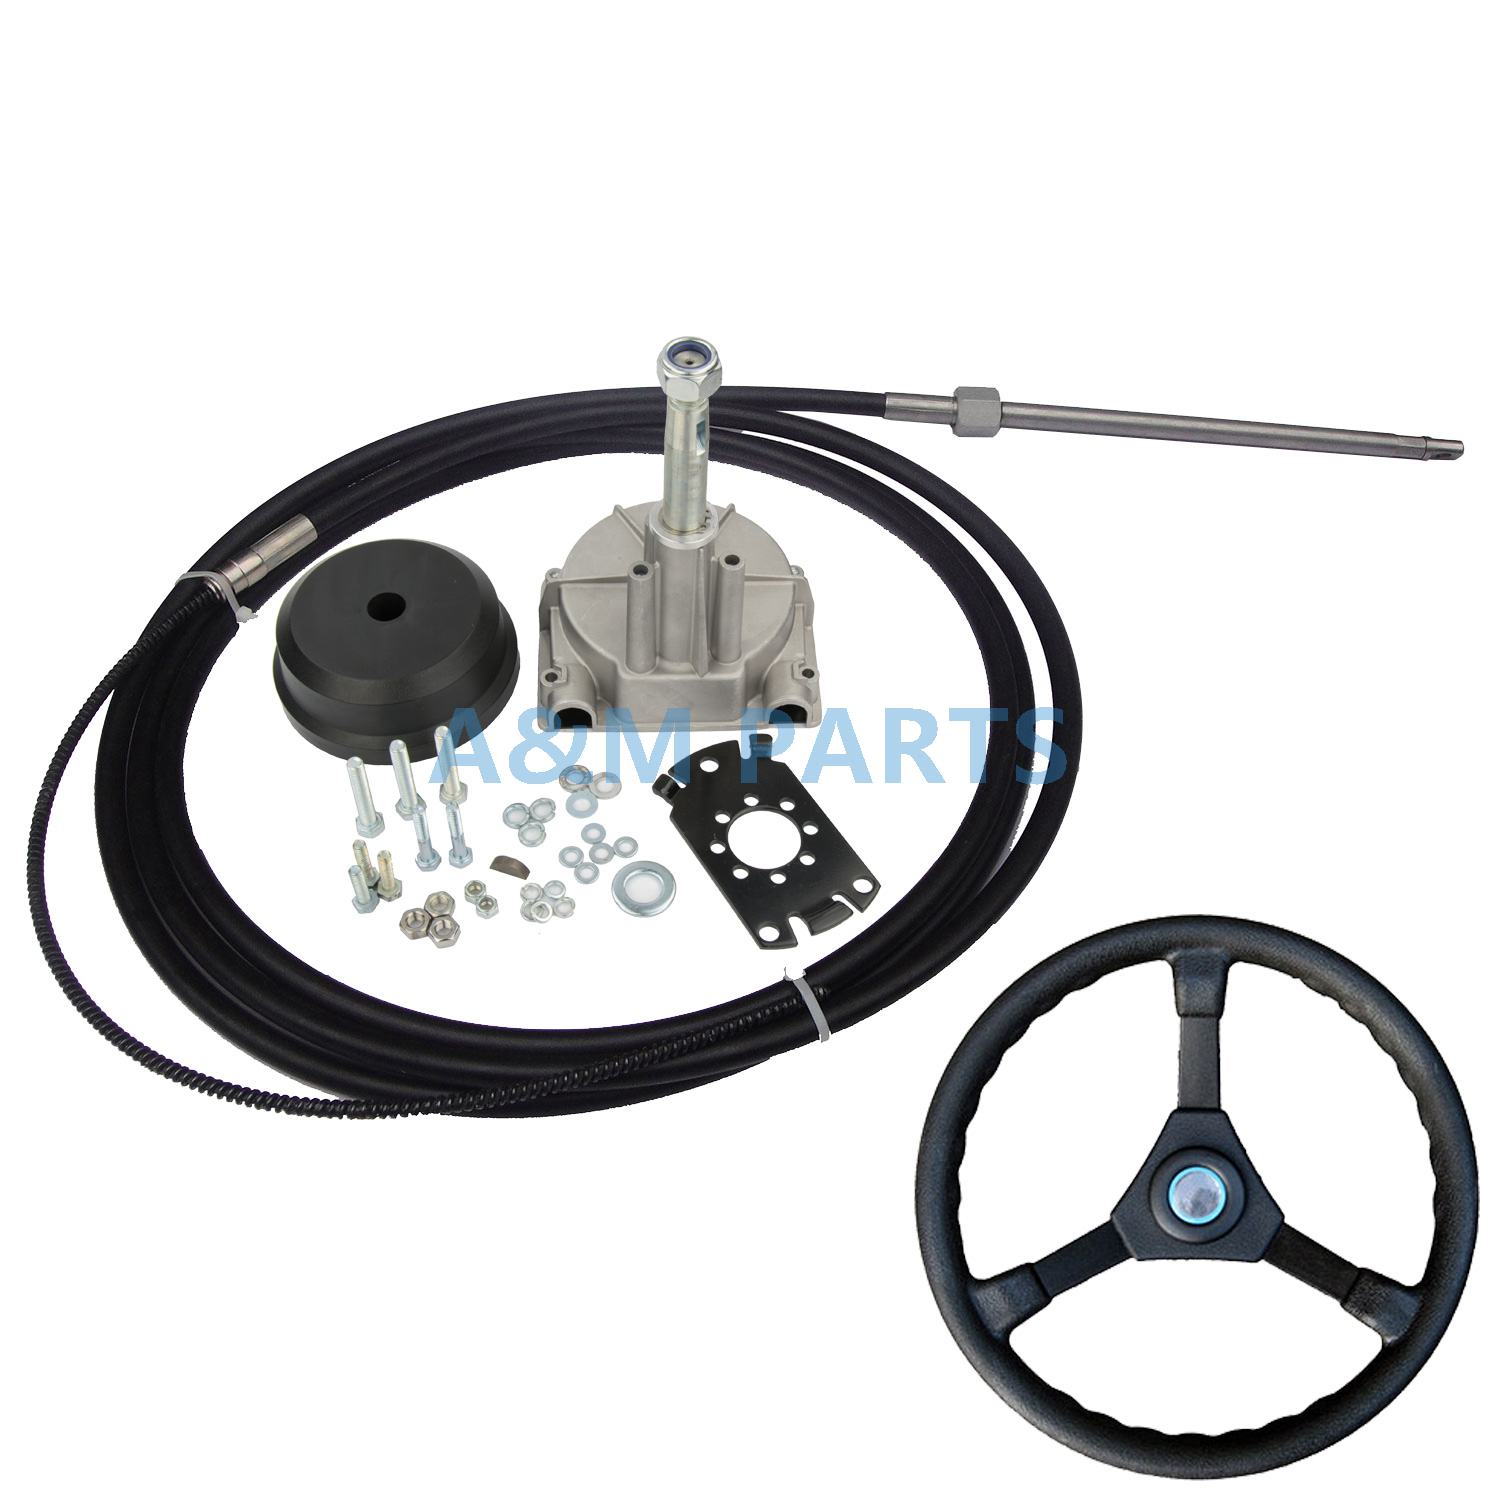 21FT Marine/Boat Single Turbine Rotating Gear Steering Systems With Wheel Cable